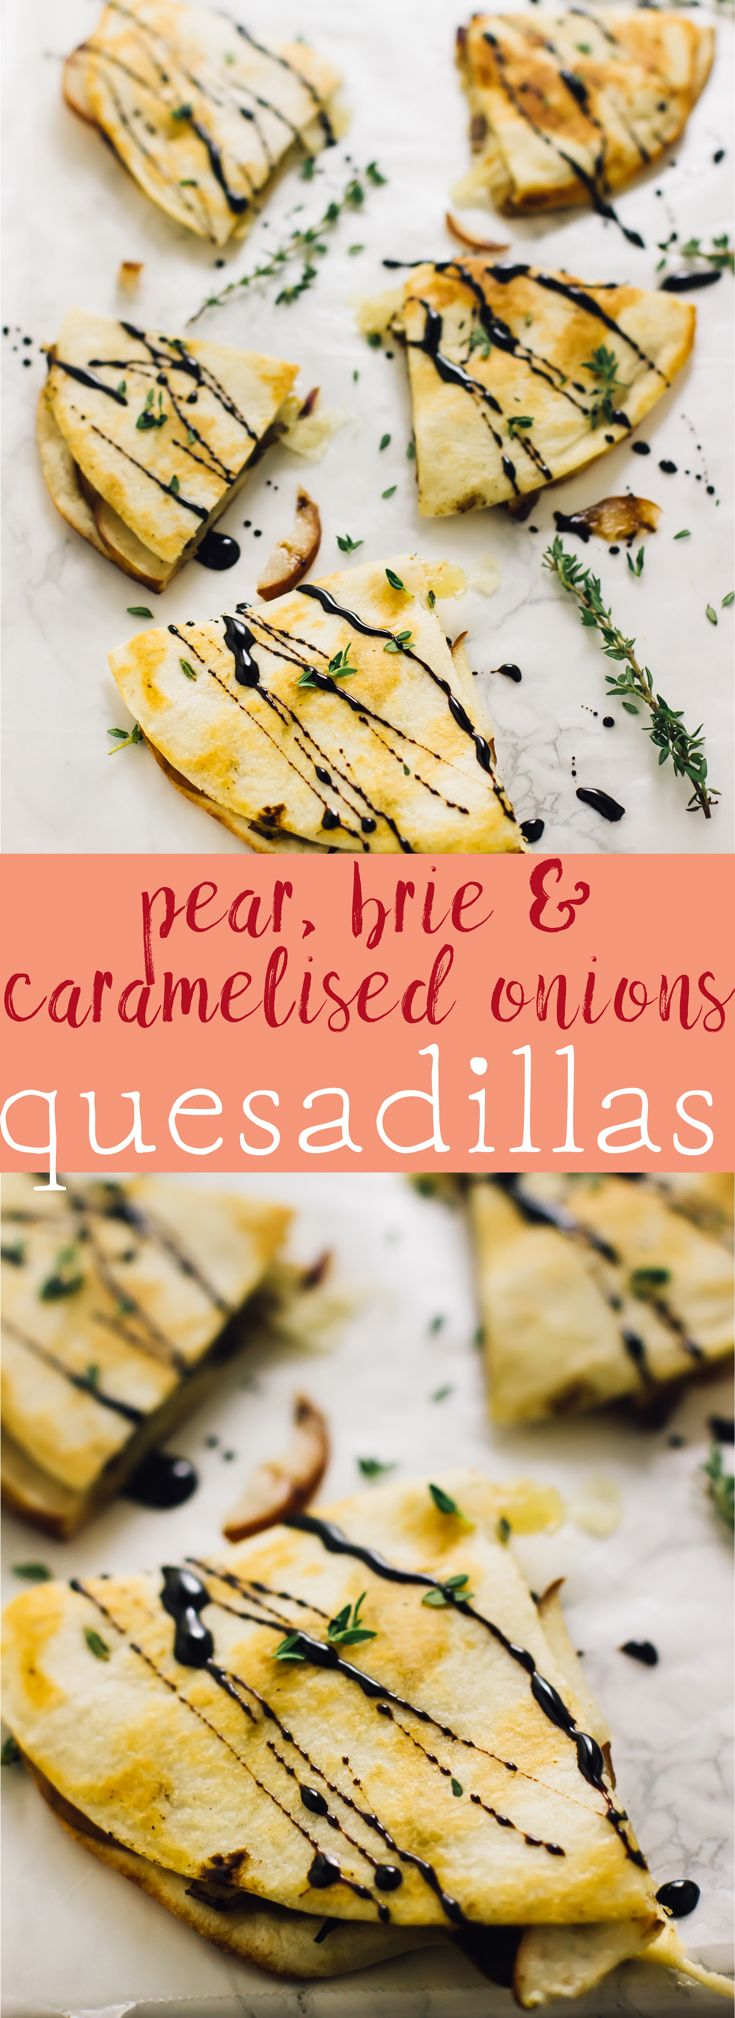 These Pear Brie & Caramelised Onions Quesadillas are drizzled with a balsamic glaze that make it the ultimate fall quick meal! via http://jessicainthekitchen.com